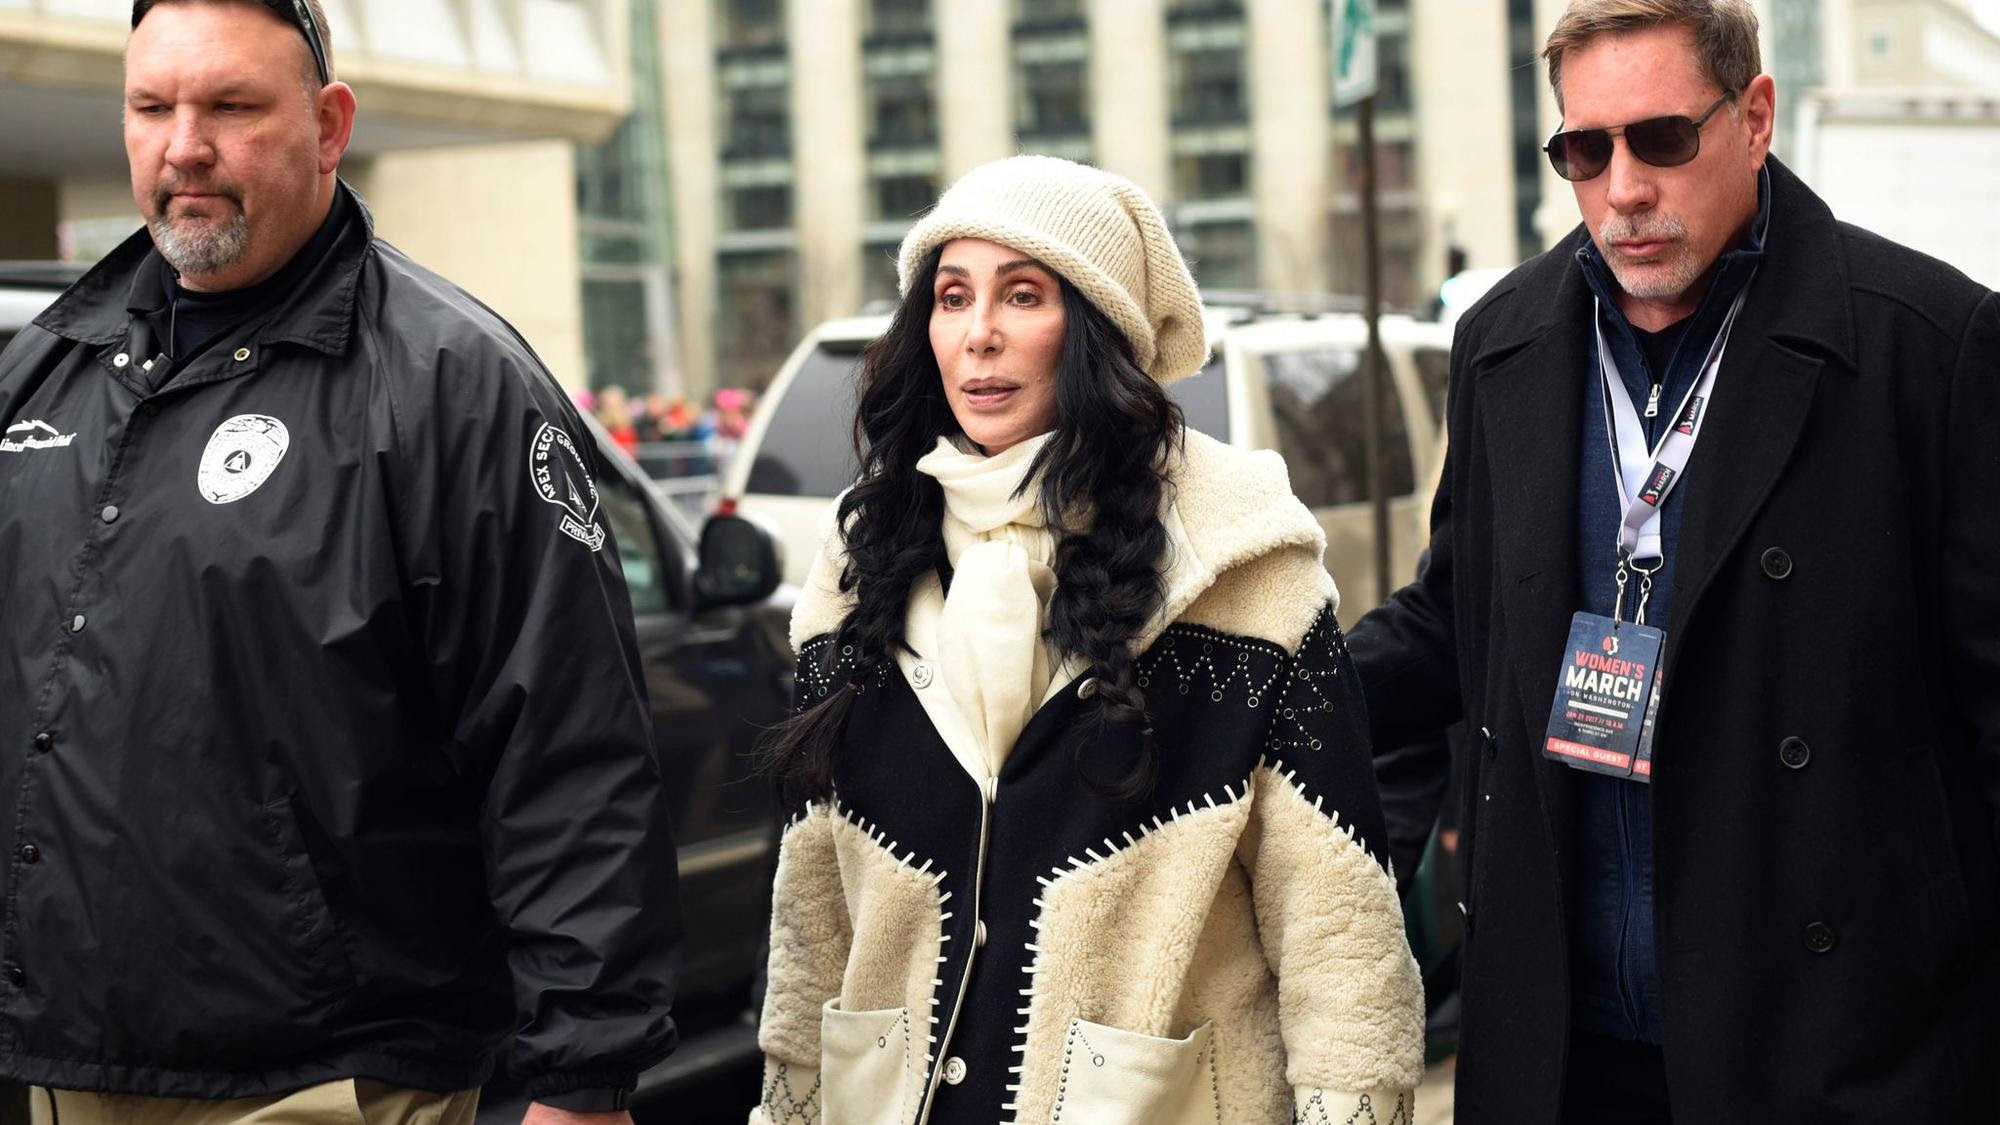 Cher arrives for the Women's March on Washington on Independence Ave. (Sait Serkan Gurbuz / Associated Press)